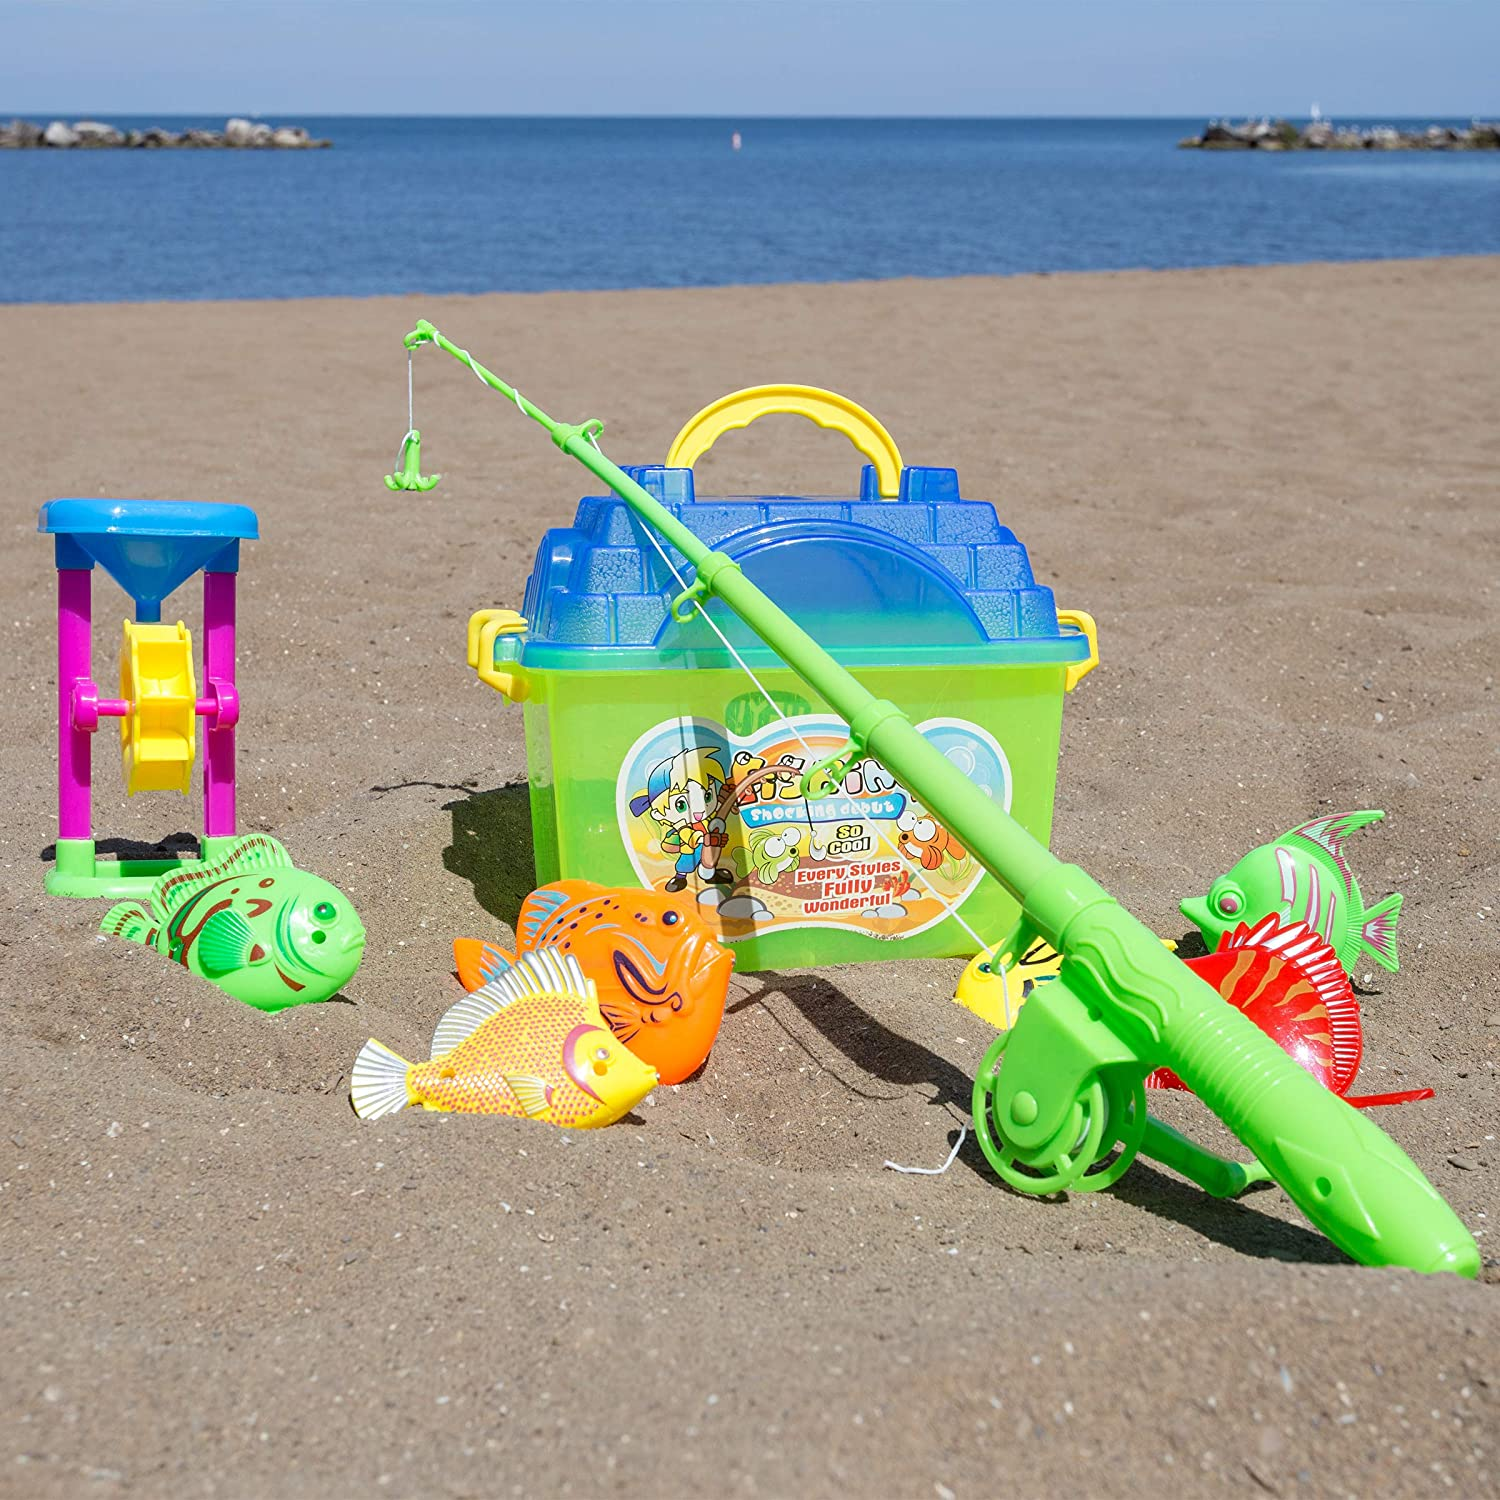 Hey Play 80 TK044489 Kids Toy Fishing Set with Magnetic Fishing Pole and Reel 6 Fish Sand Wheel and Tackle Box Fun Pretend Play Toys for Boys and Girls